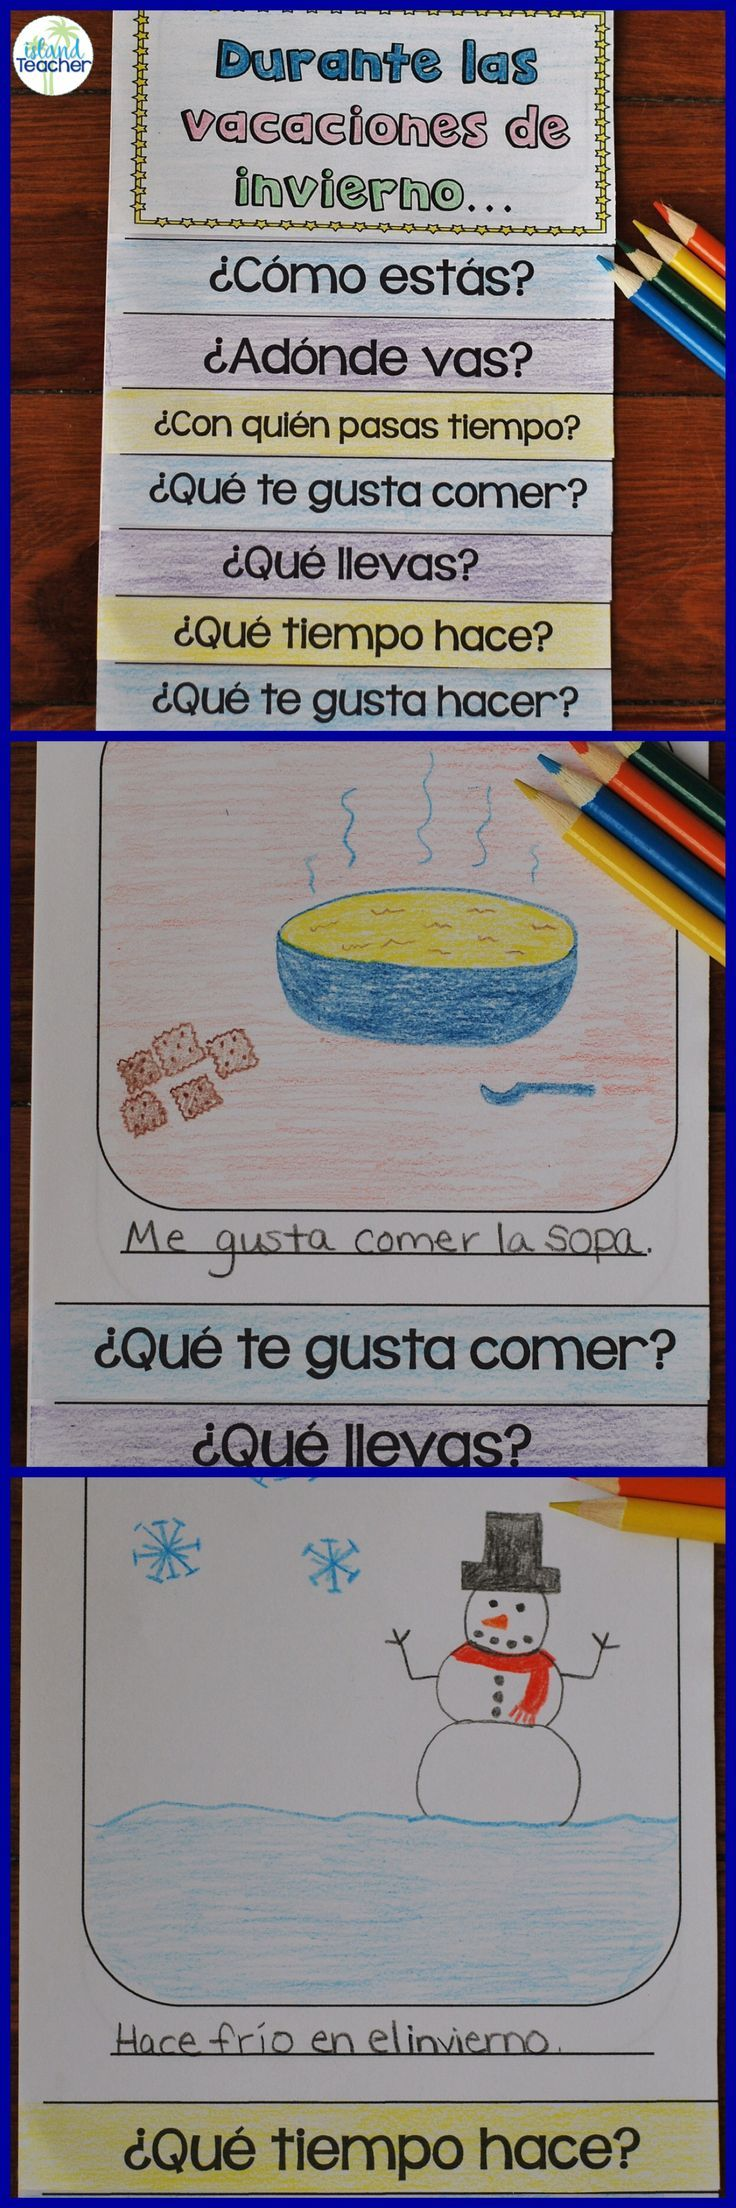 Spanish Winter Vacation Questions Flip Book. Students answer questions and add a drawing to talk about their winter vacation.